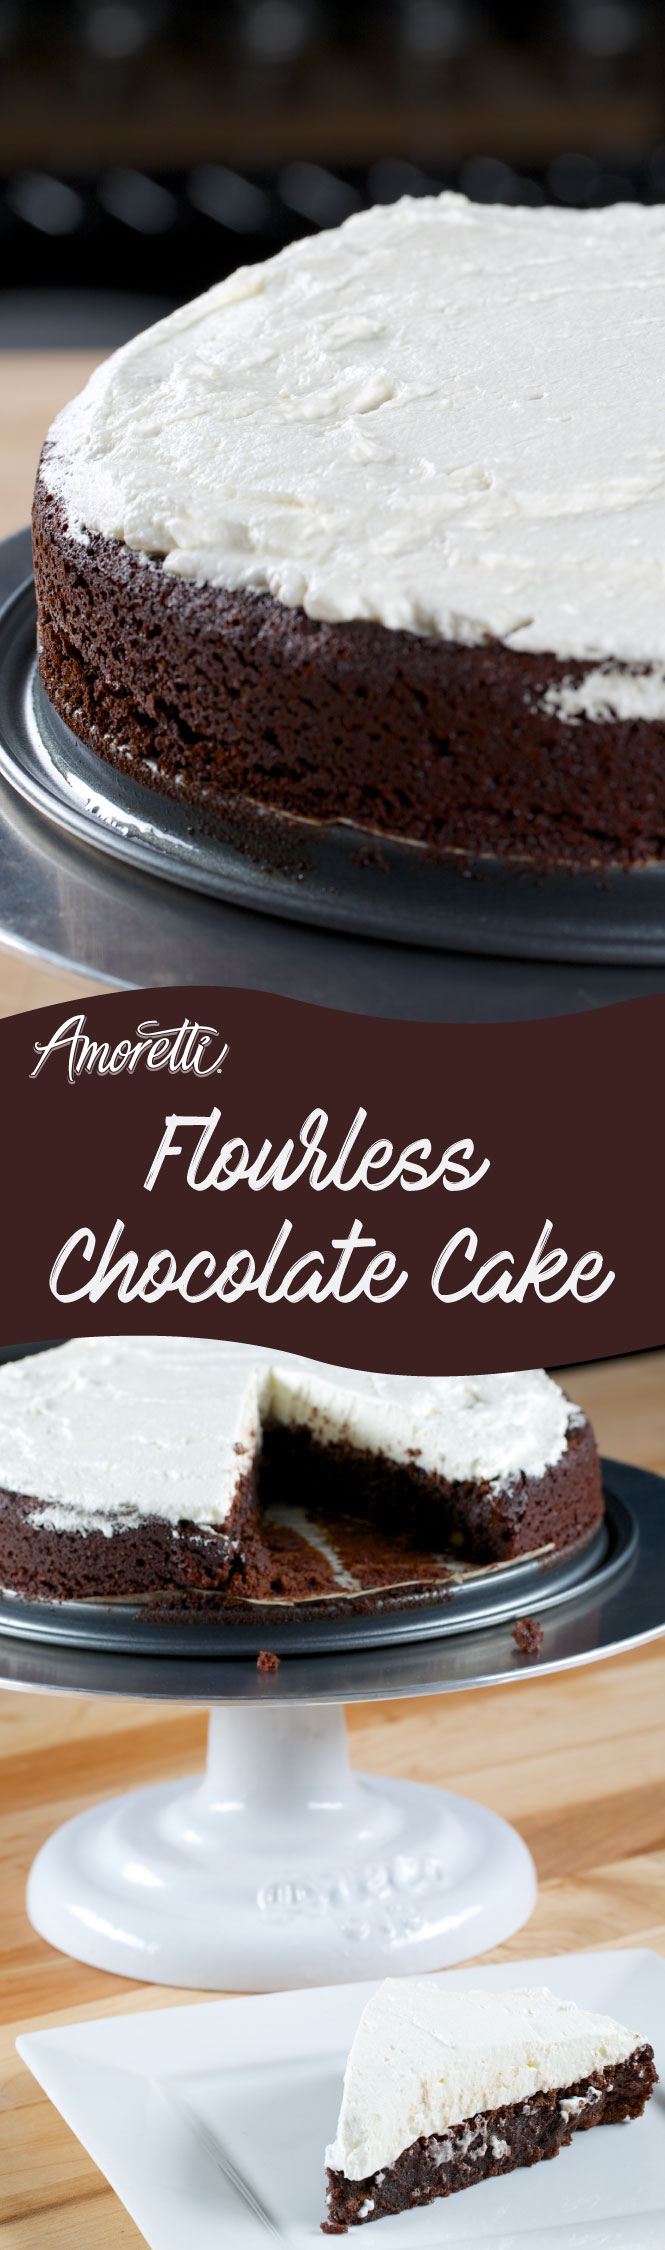 A gluten-free cake that not only has fewer carbs but tastes super delicious!